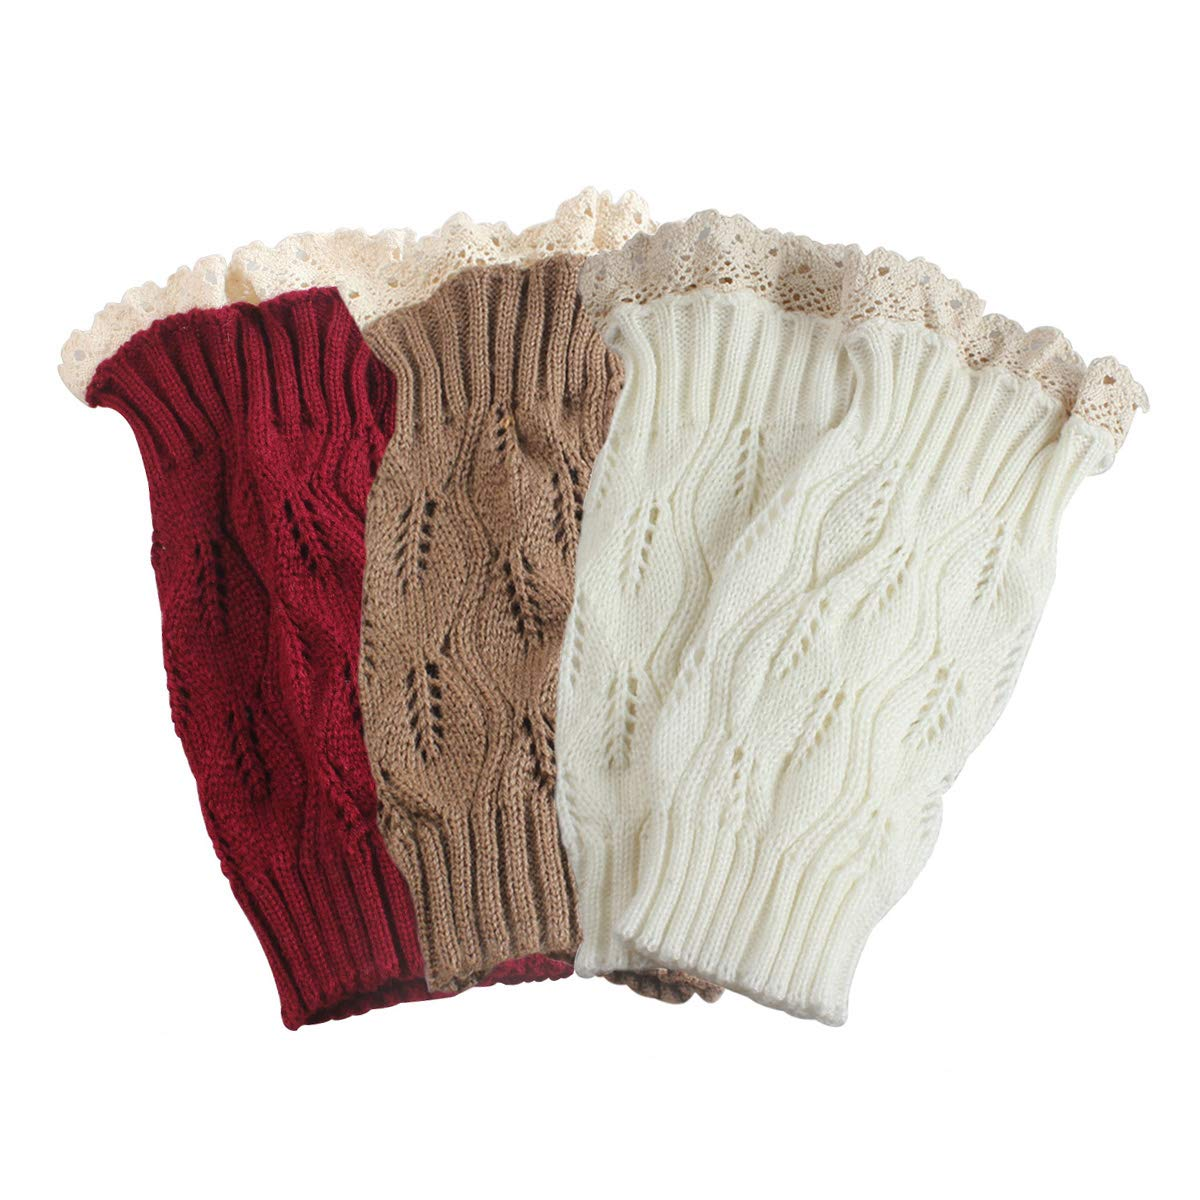 TQS™ Set of 3 Knit Boot Topper Cuff Leg Warmer Bootsock Lace Crochet Detail,Red/Khaki/White,Medium